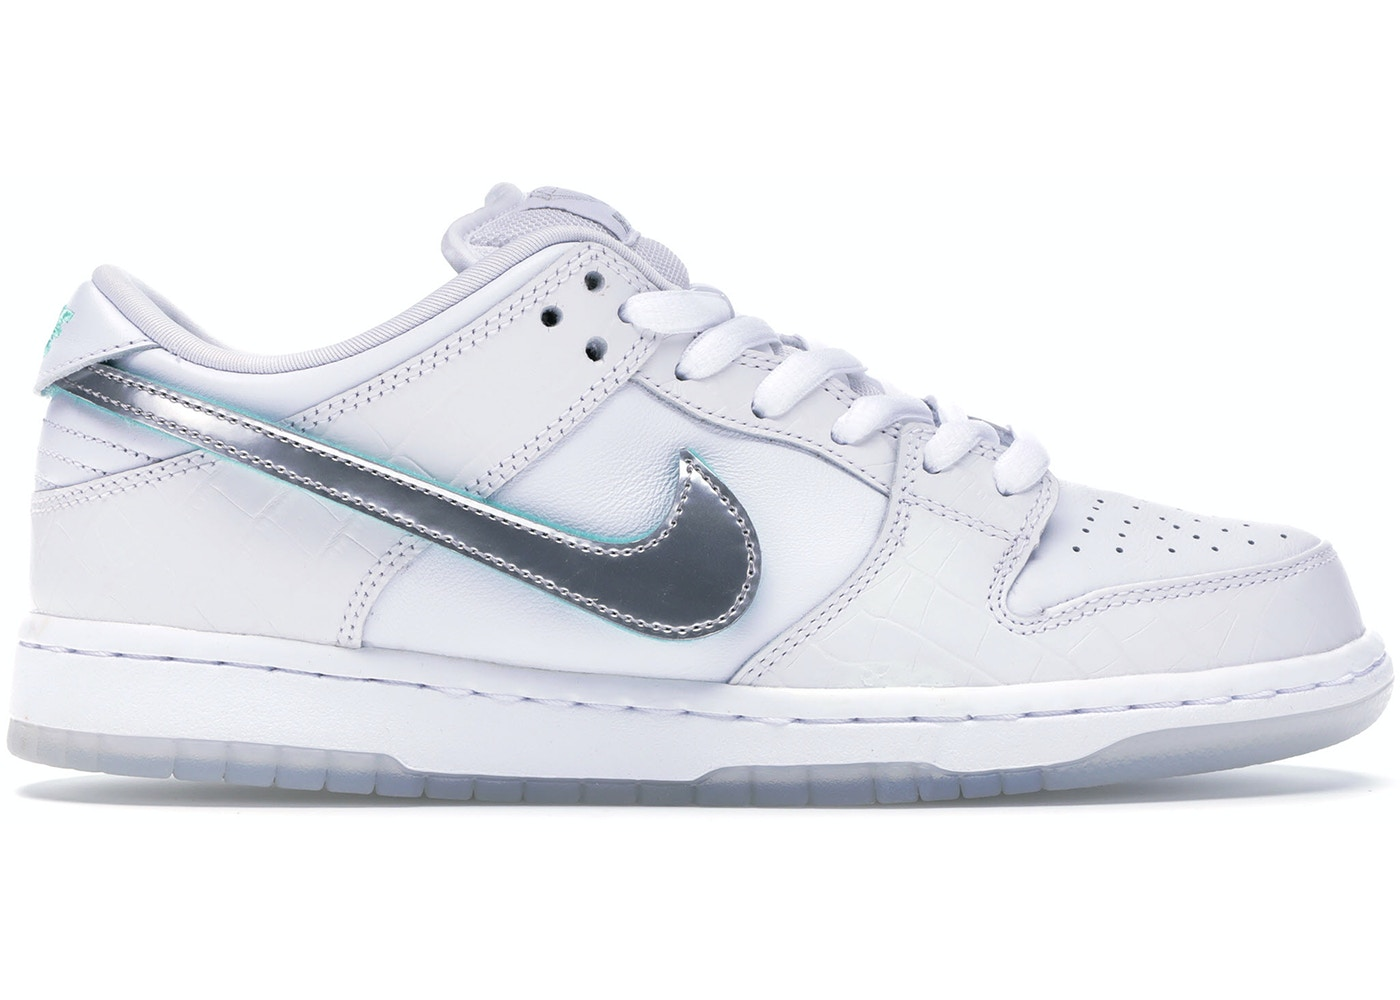 free shipping separation shoes low price sale Nike SB Dunk Low Diamond Supply Co White Diamond